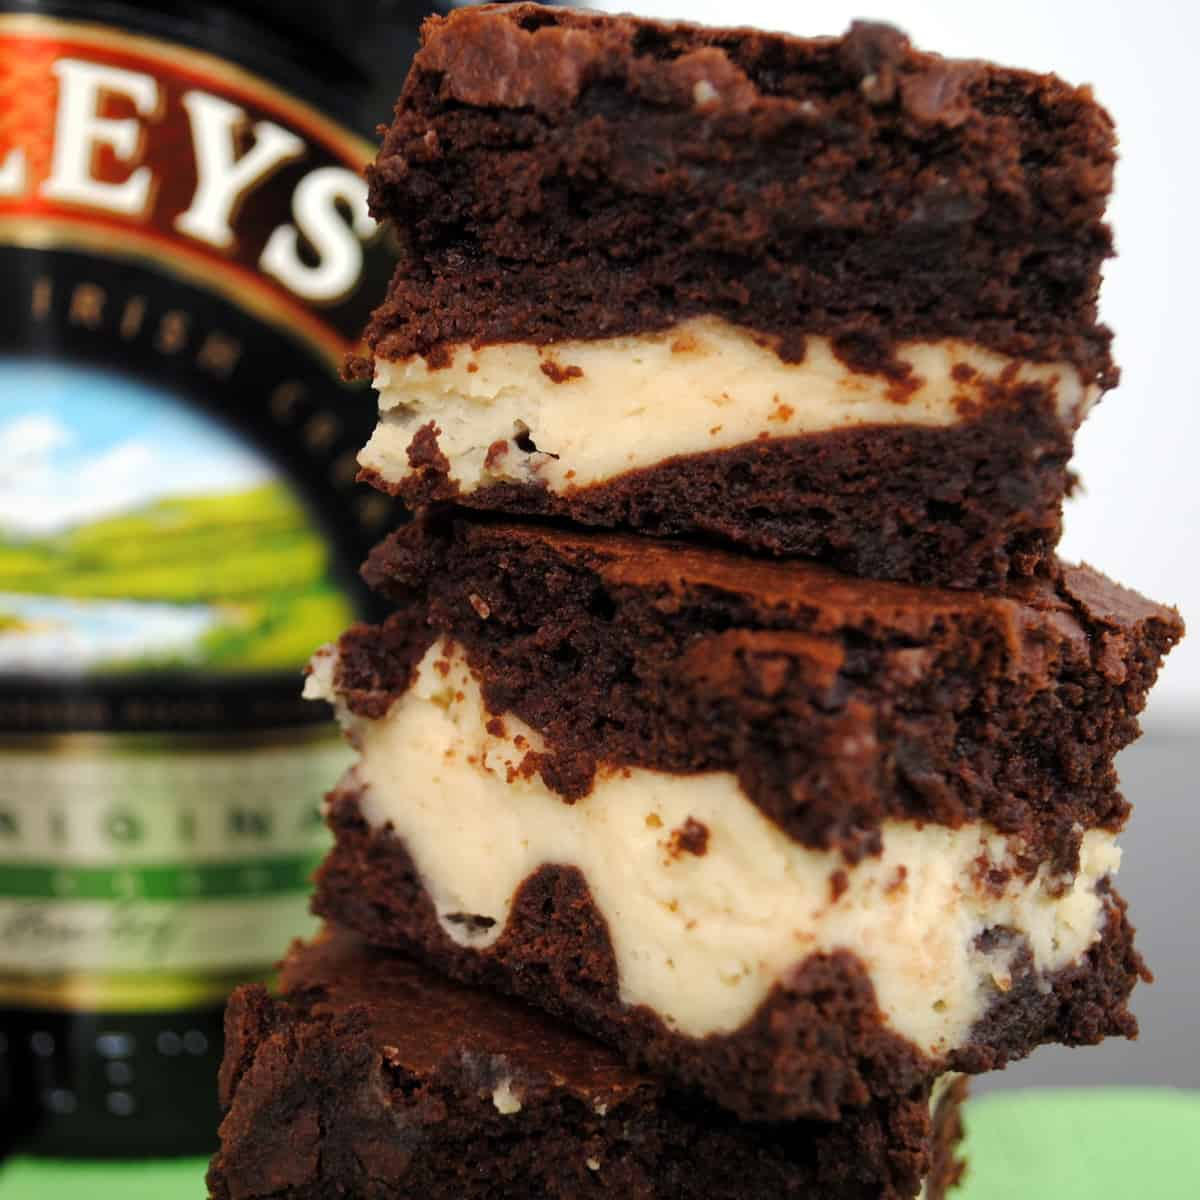 These Irish Cream Brownies are decadent chocolate brownies with a Baileys-spiked cheesecake center. Perfect for St. Patrick's Day . . . or any day! | foxeslovelemons.com